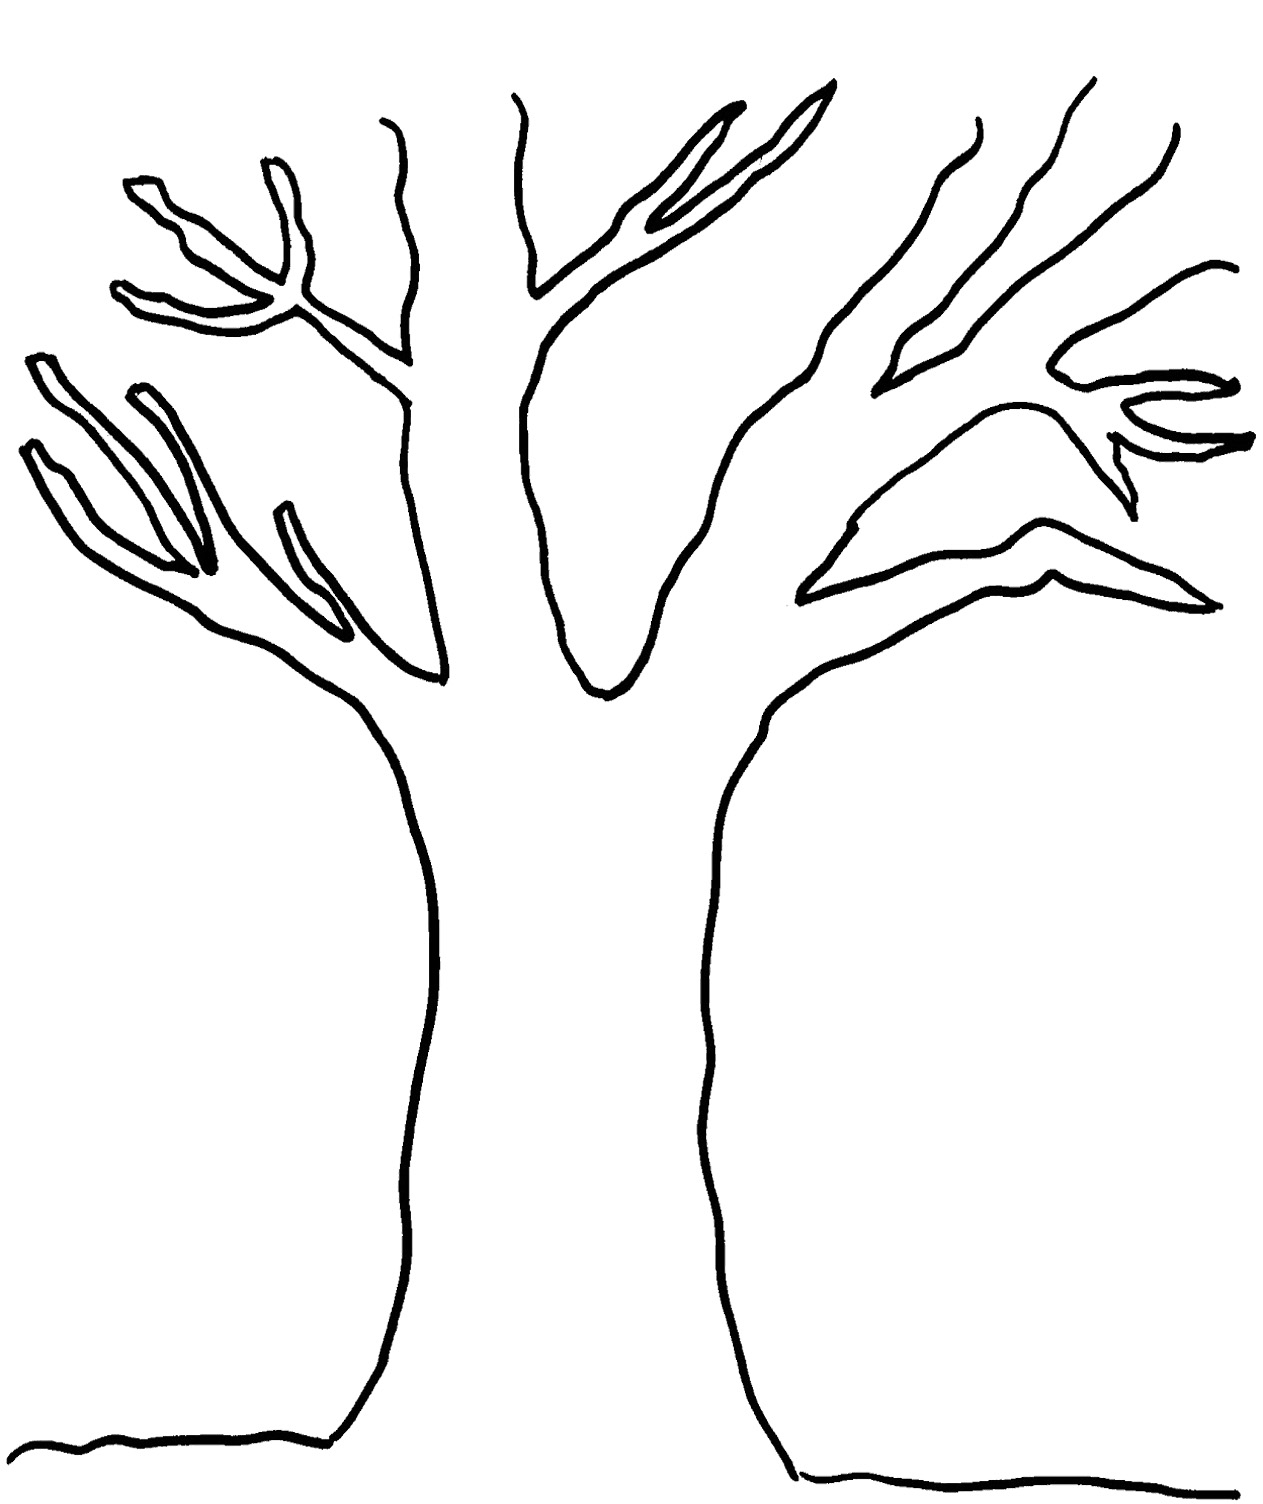 Tree With Leaves Black And White Clipart & Free Clip Art.